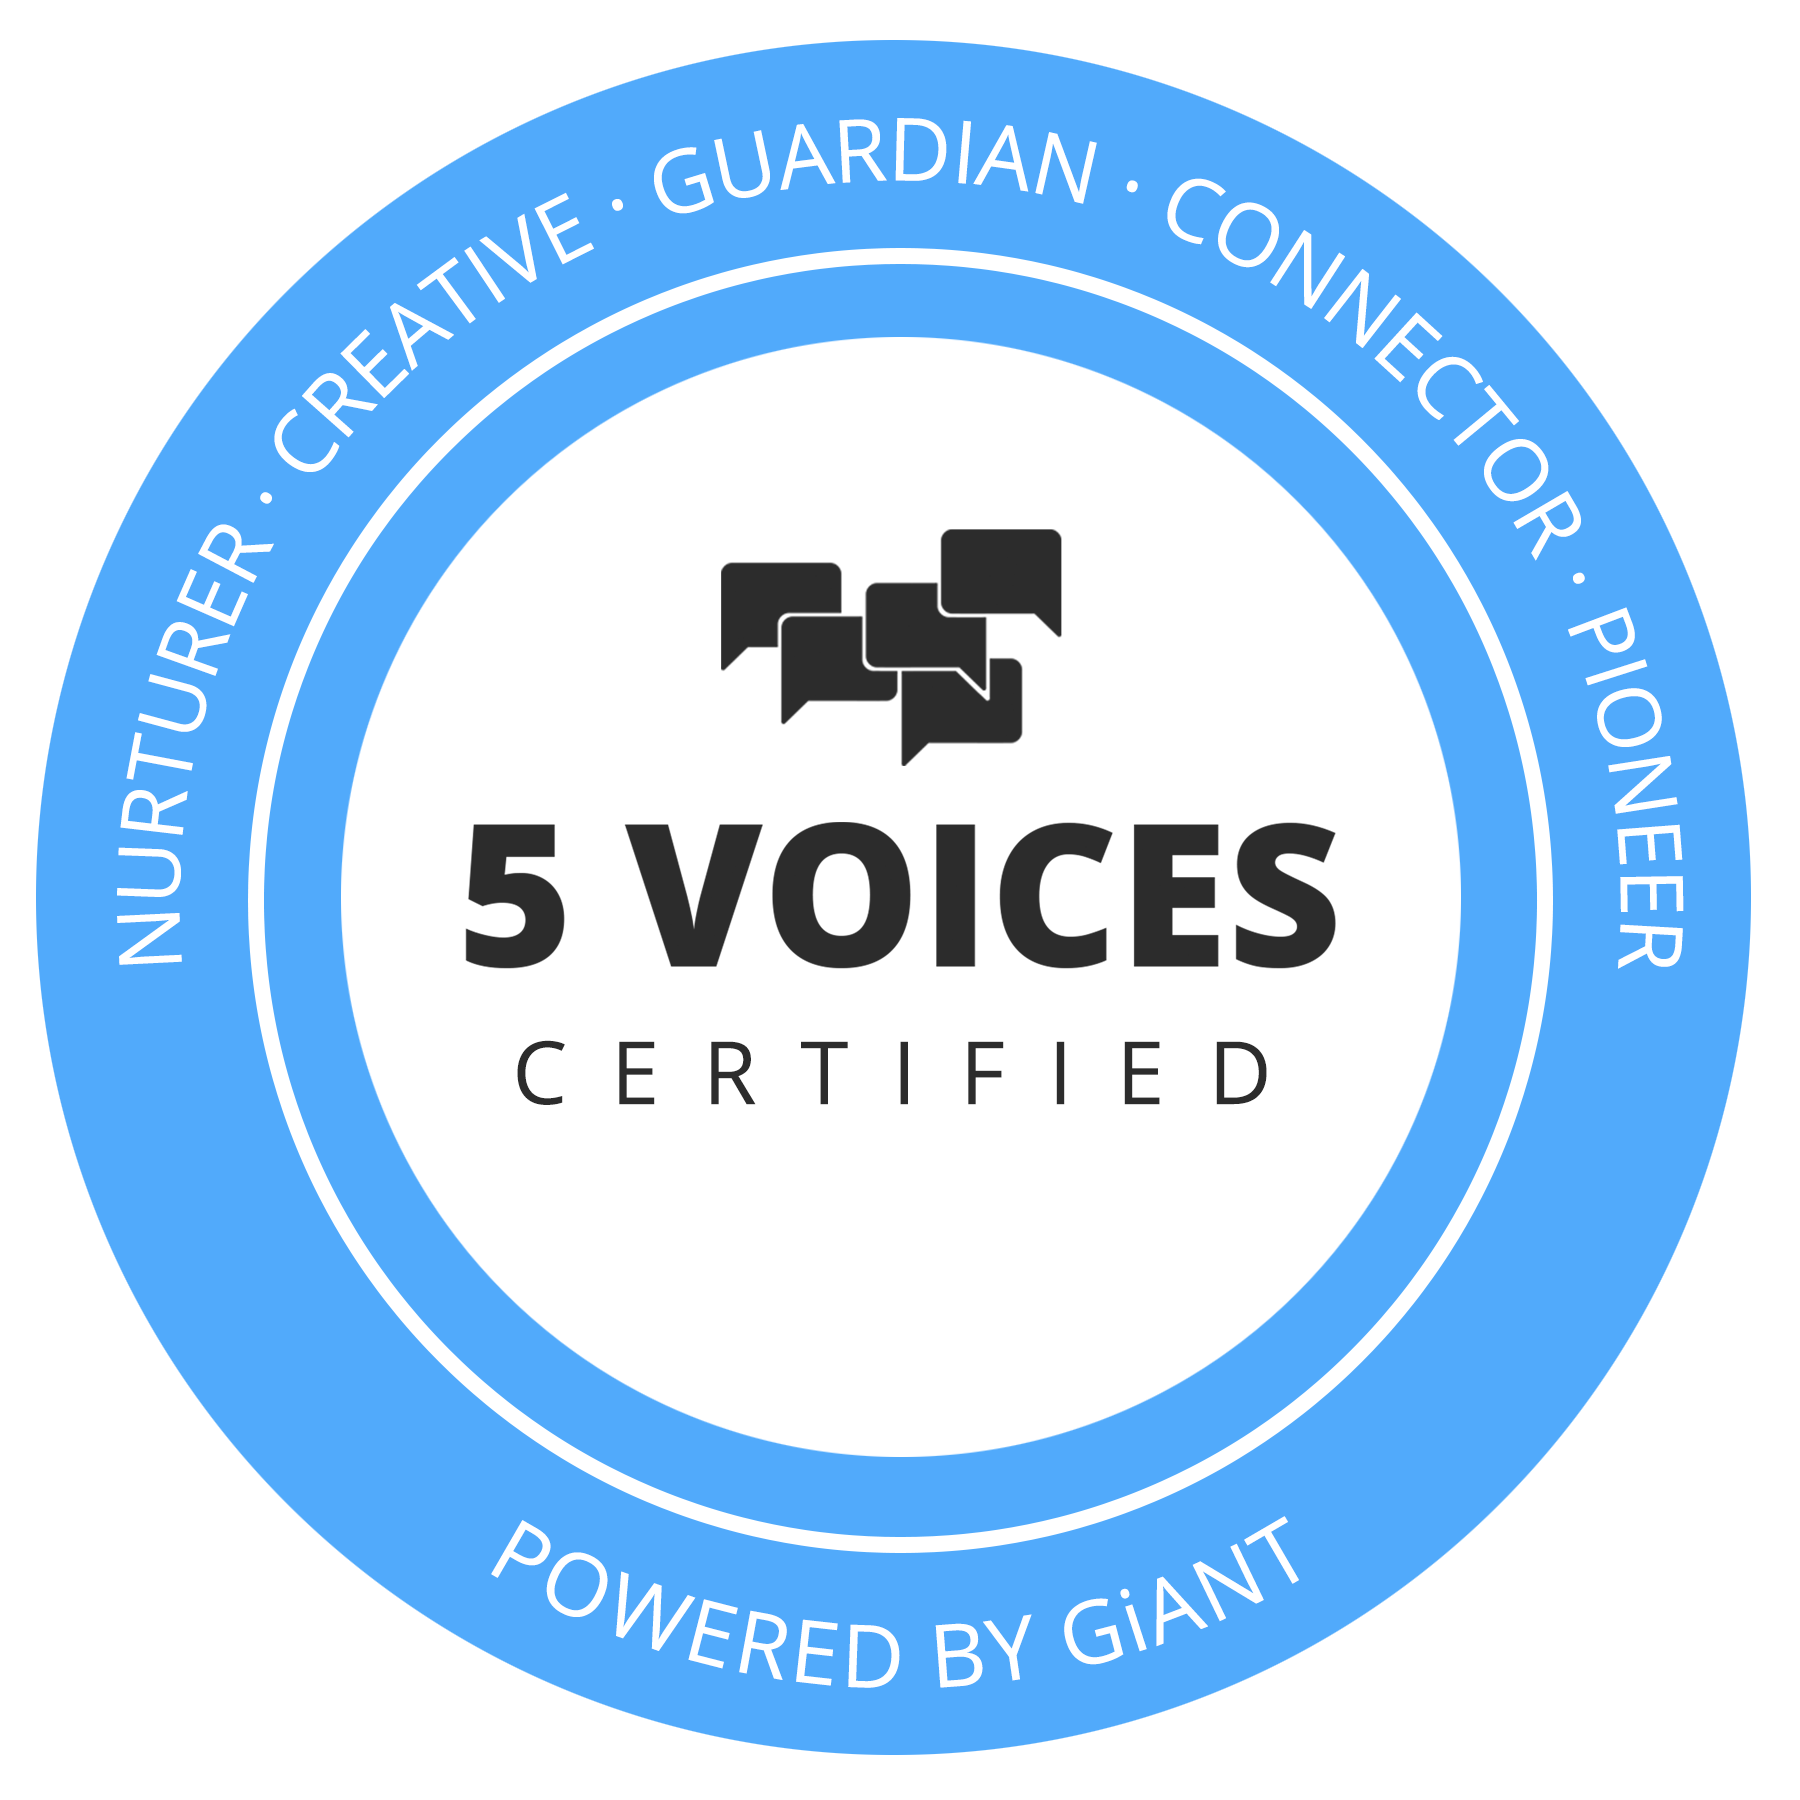 5 Voices Workshop - The 5 Voices Workshops can be facilitated in person or video with you and your leadership team. Let's connect and see how 5 Voices can help you and your team grow and get results. Chad is also available for speaking with a number of other leadership topics.